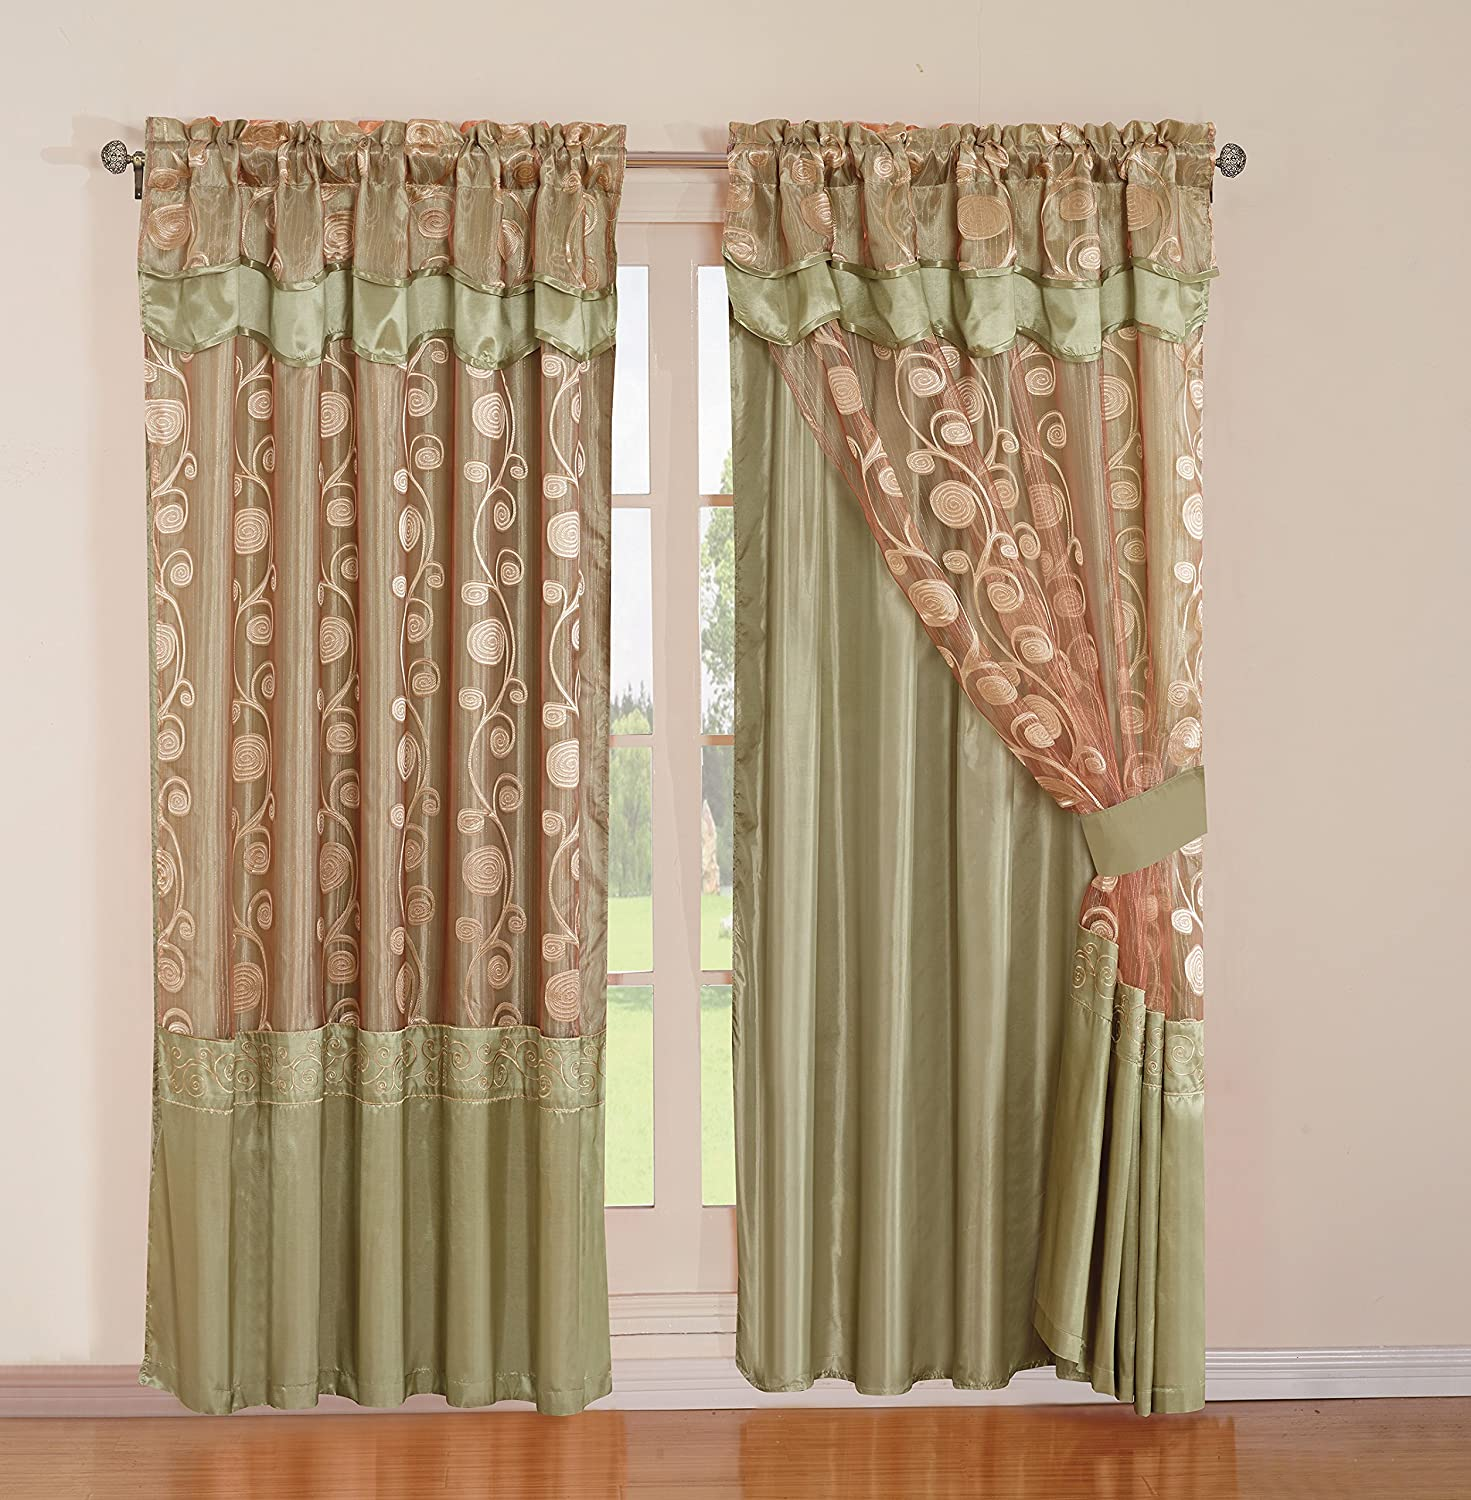 2 Pieces Embroidery Rod Pocket Window Curtains Drape Panels Treatment With Attached Valances